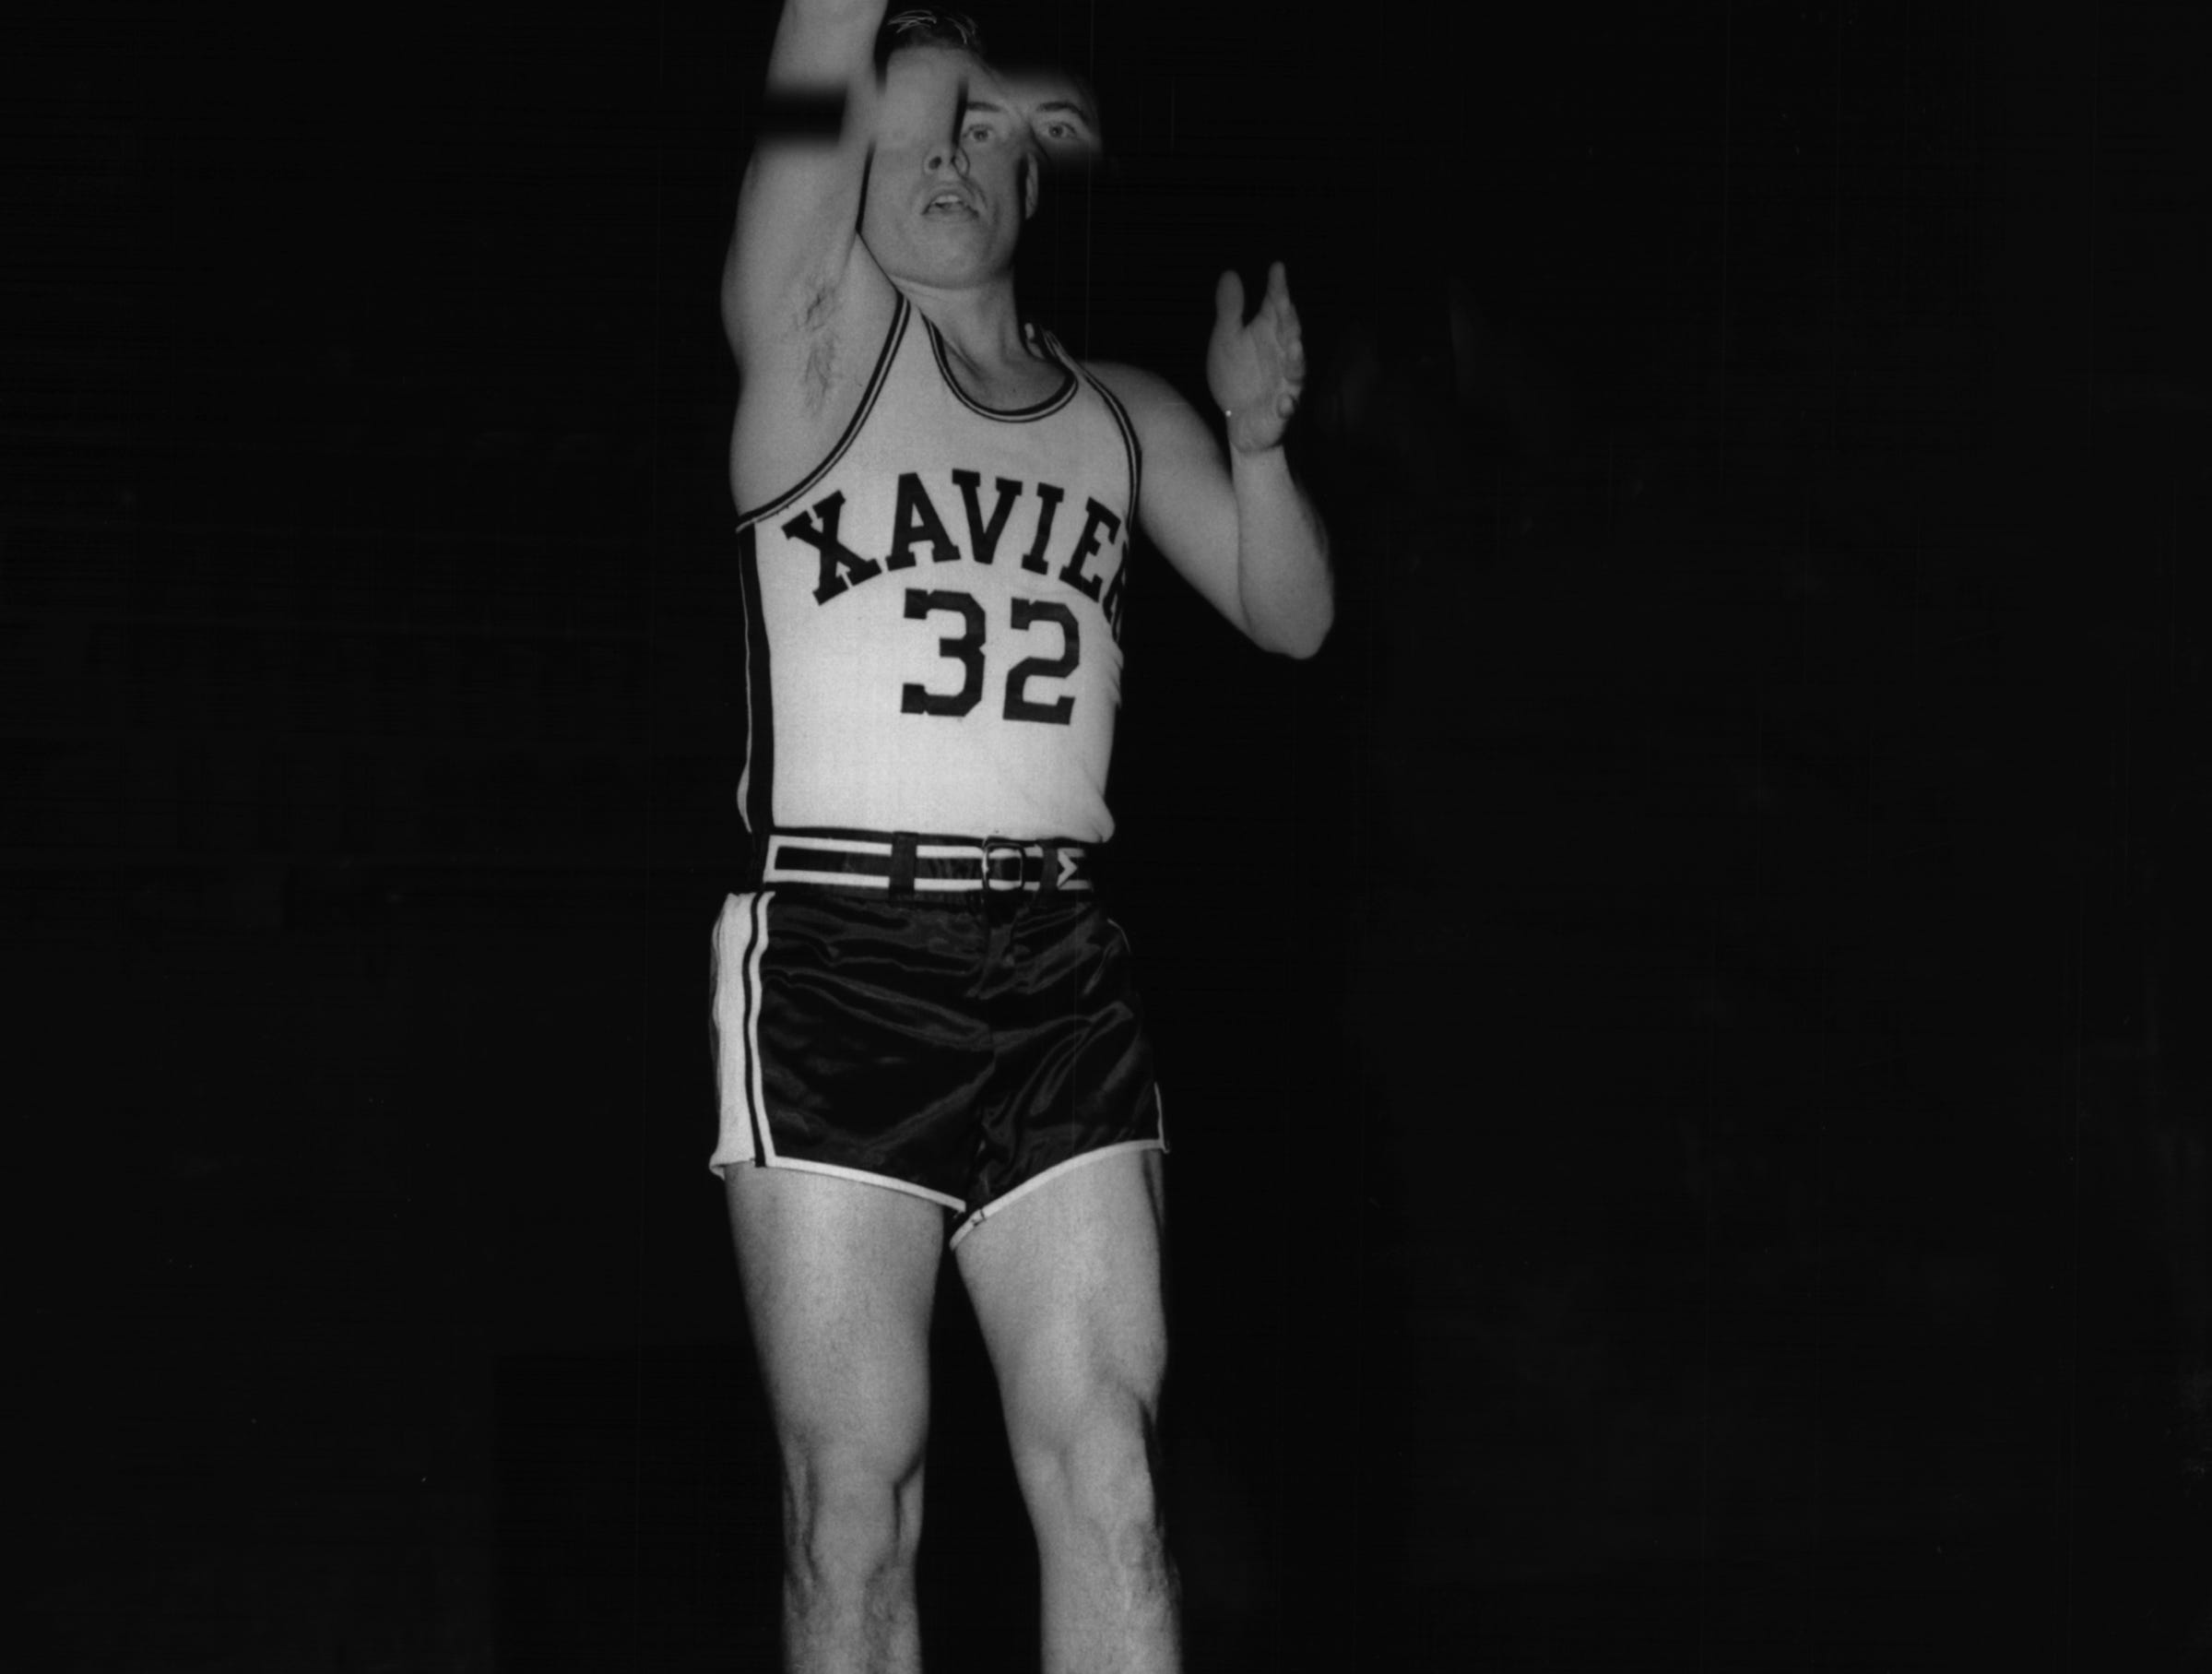 "Xavier coach Ned Wulk fondly describes team captain Jimmy Boothe, pictured, as the ""best little player in college basketball."" Rival teams offer a sold amen, for in two seasons, the senior guard, only five feet seven inches from toe to top, has scored 769 points and amazed spectators with his spectacular floor play."